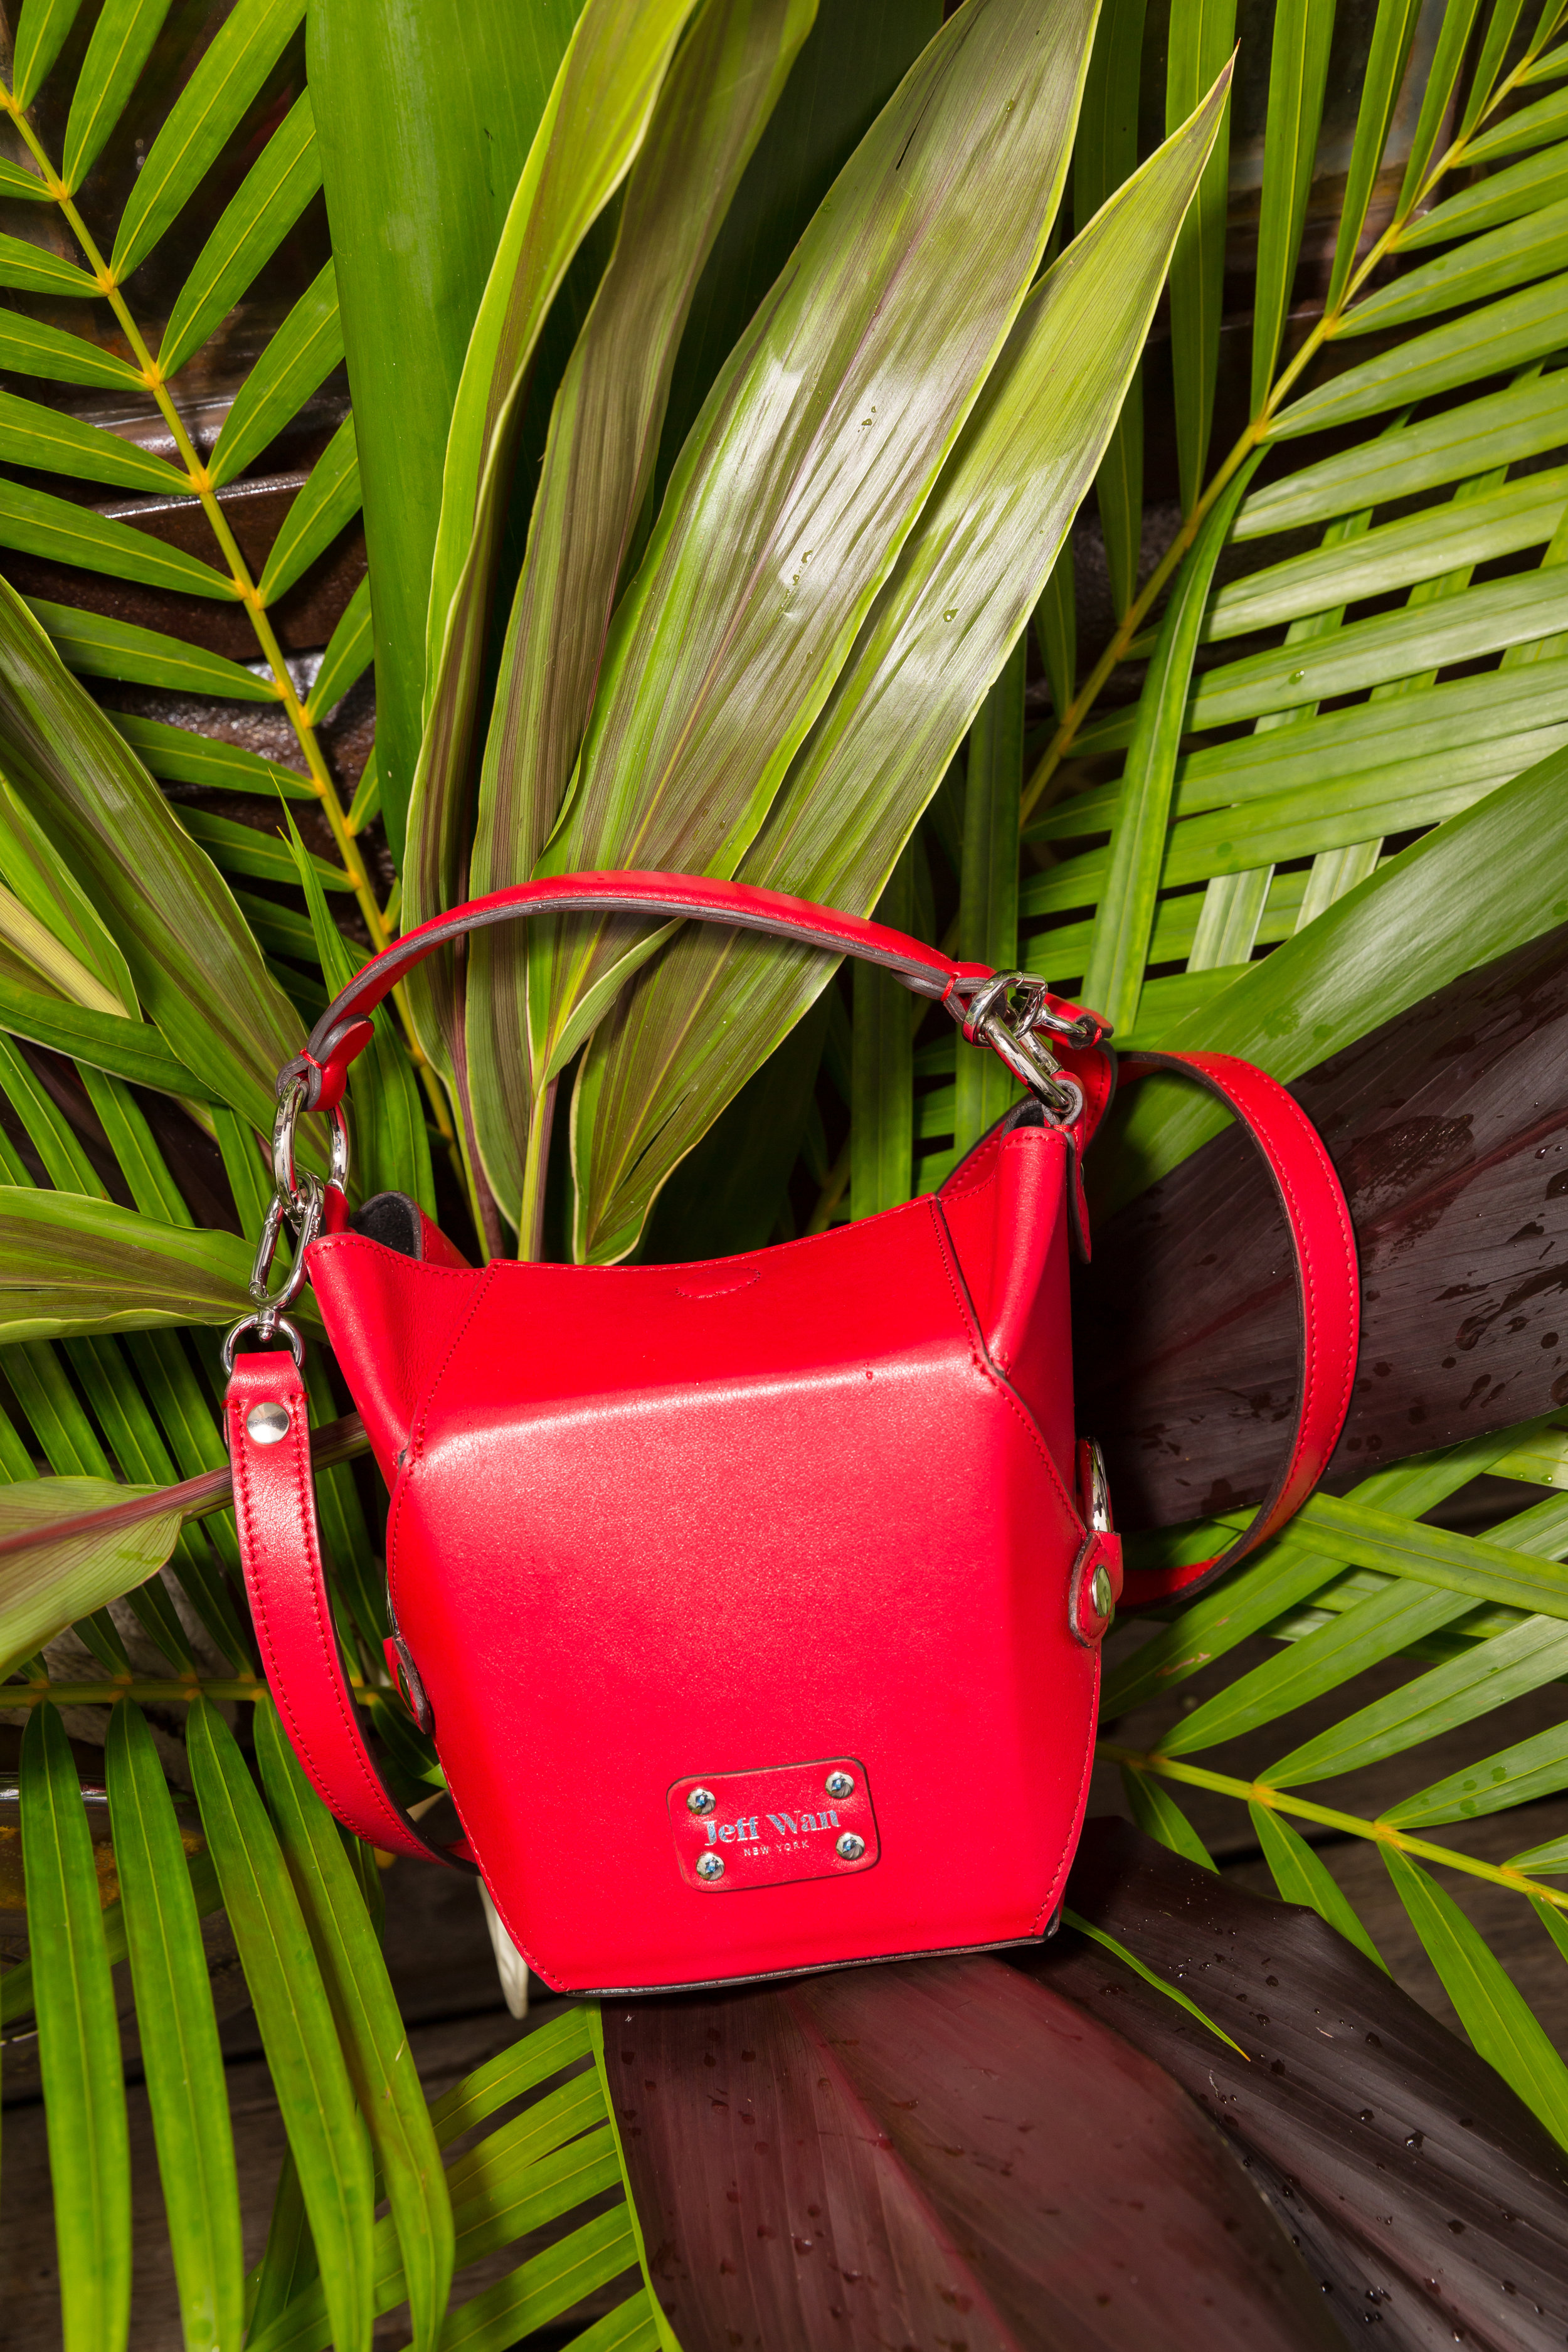 The mini lunch box in red.